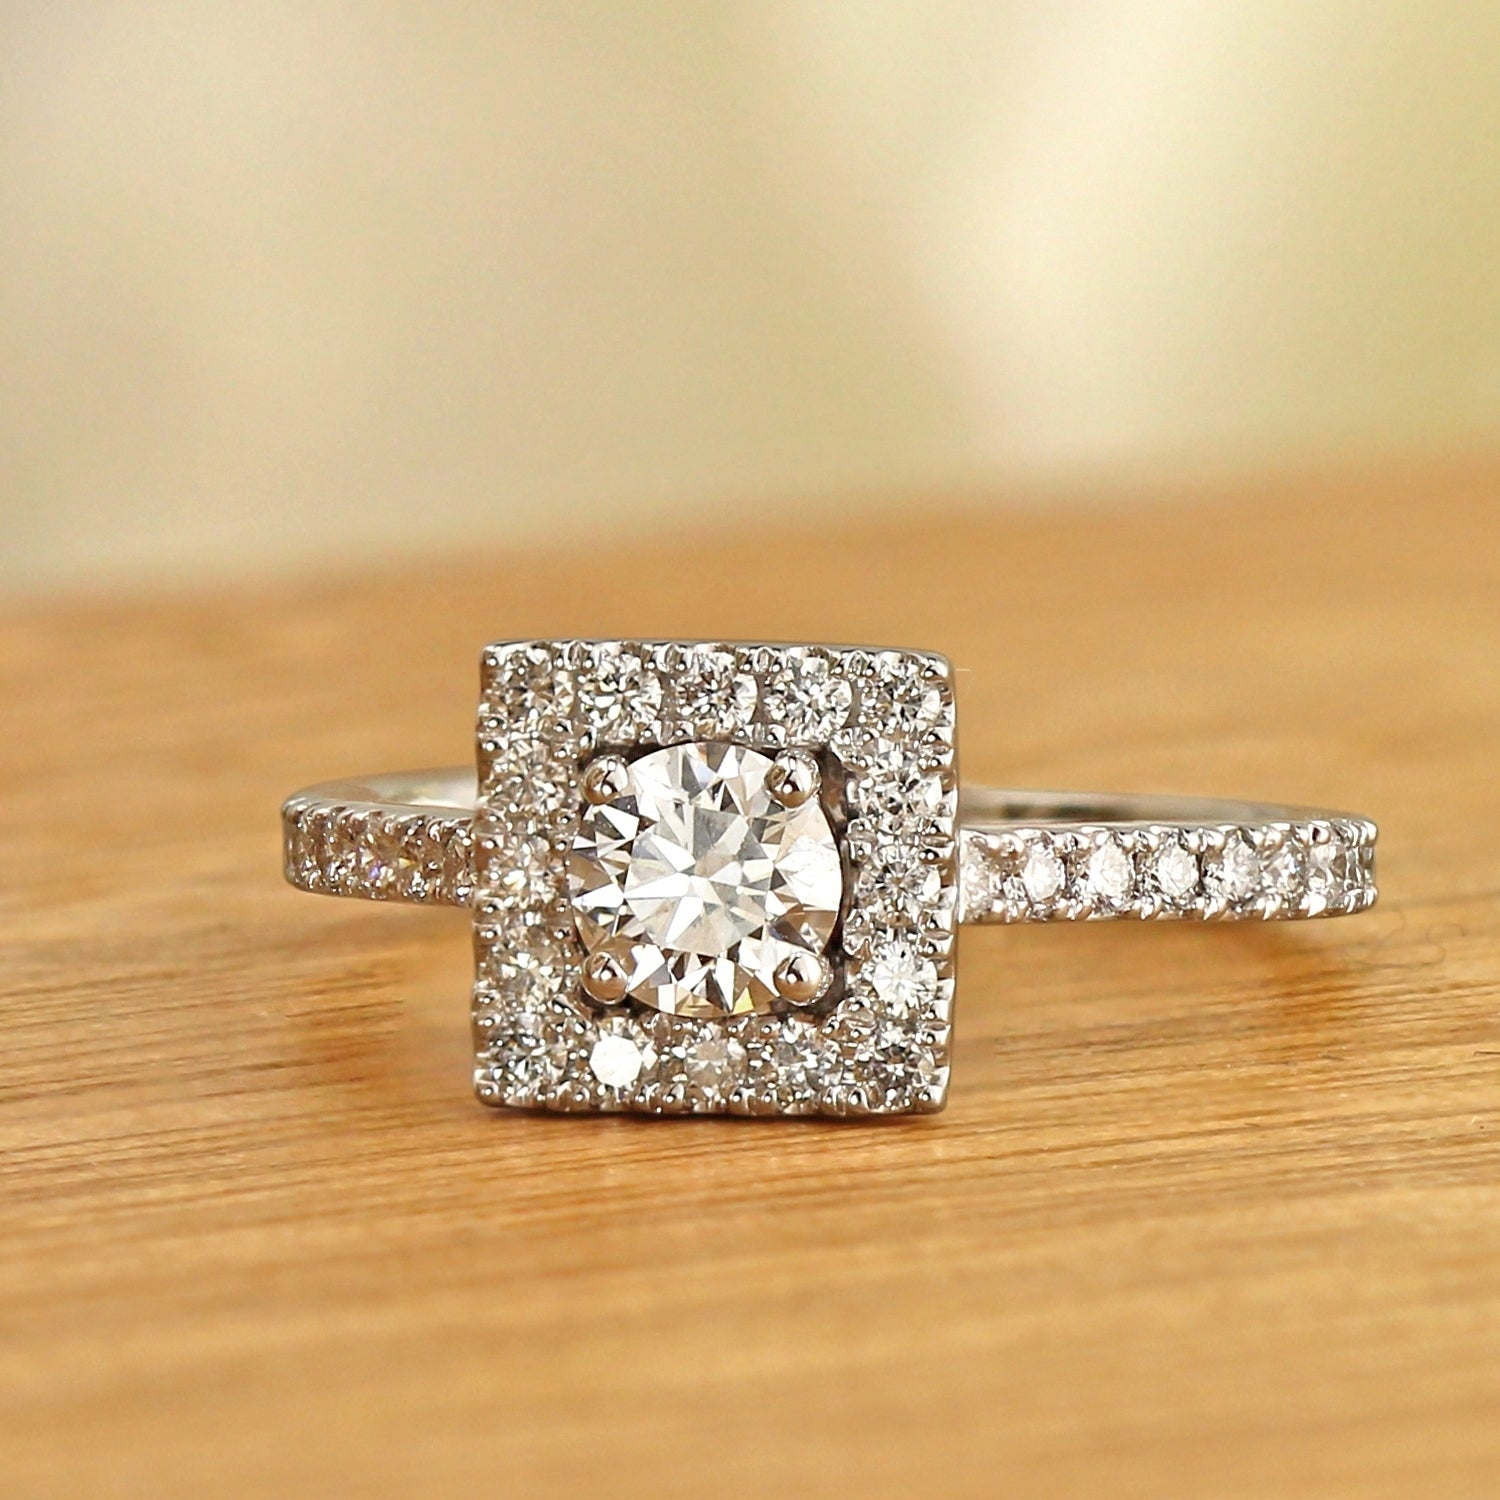 14k Gold 1ctw Lab Grown Square Halo Diamond Engagement Ring Ethical Sparkle With Regard To Newest Square Sparkle Halo Rings (View 11 of 25)